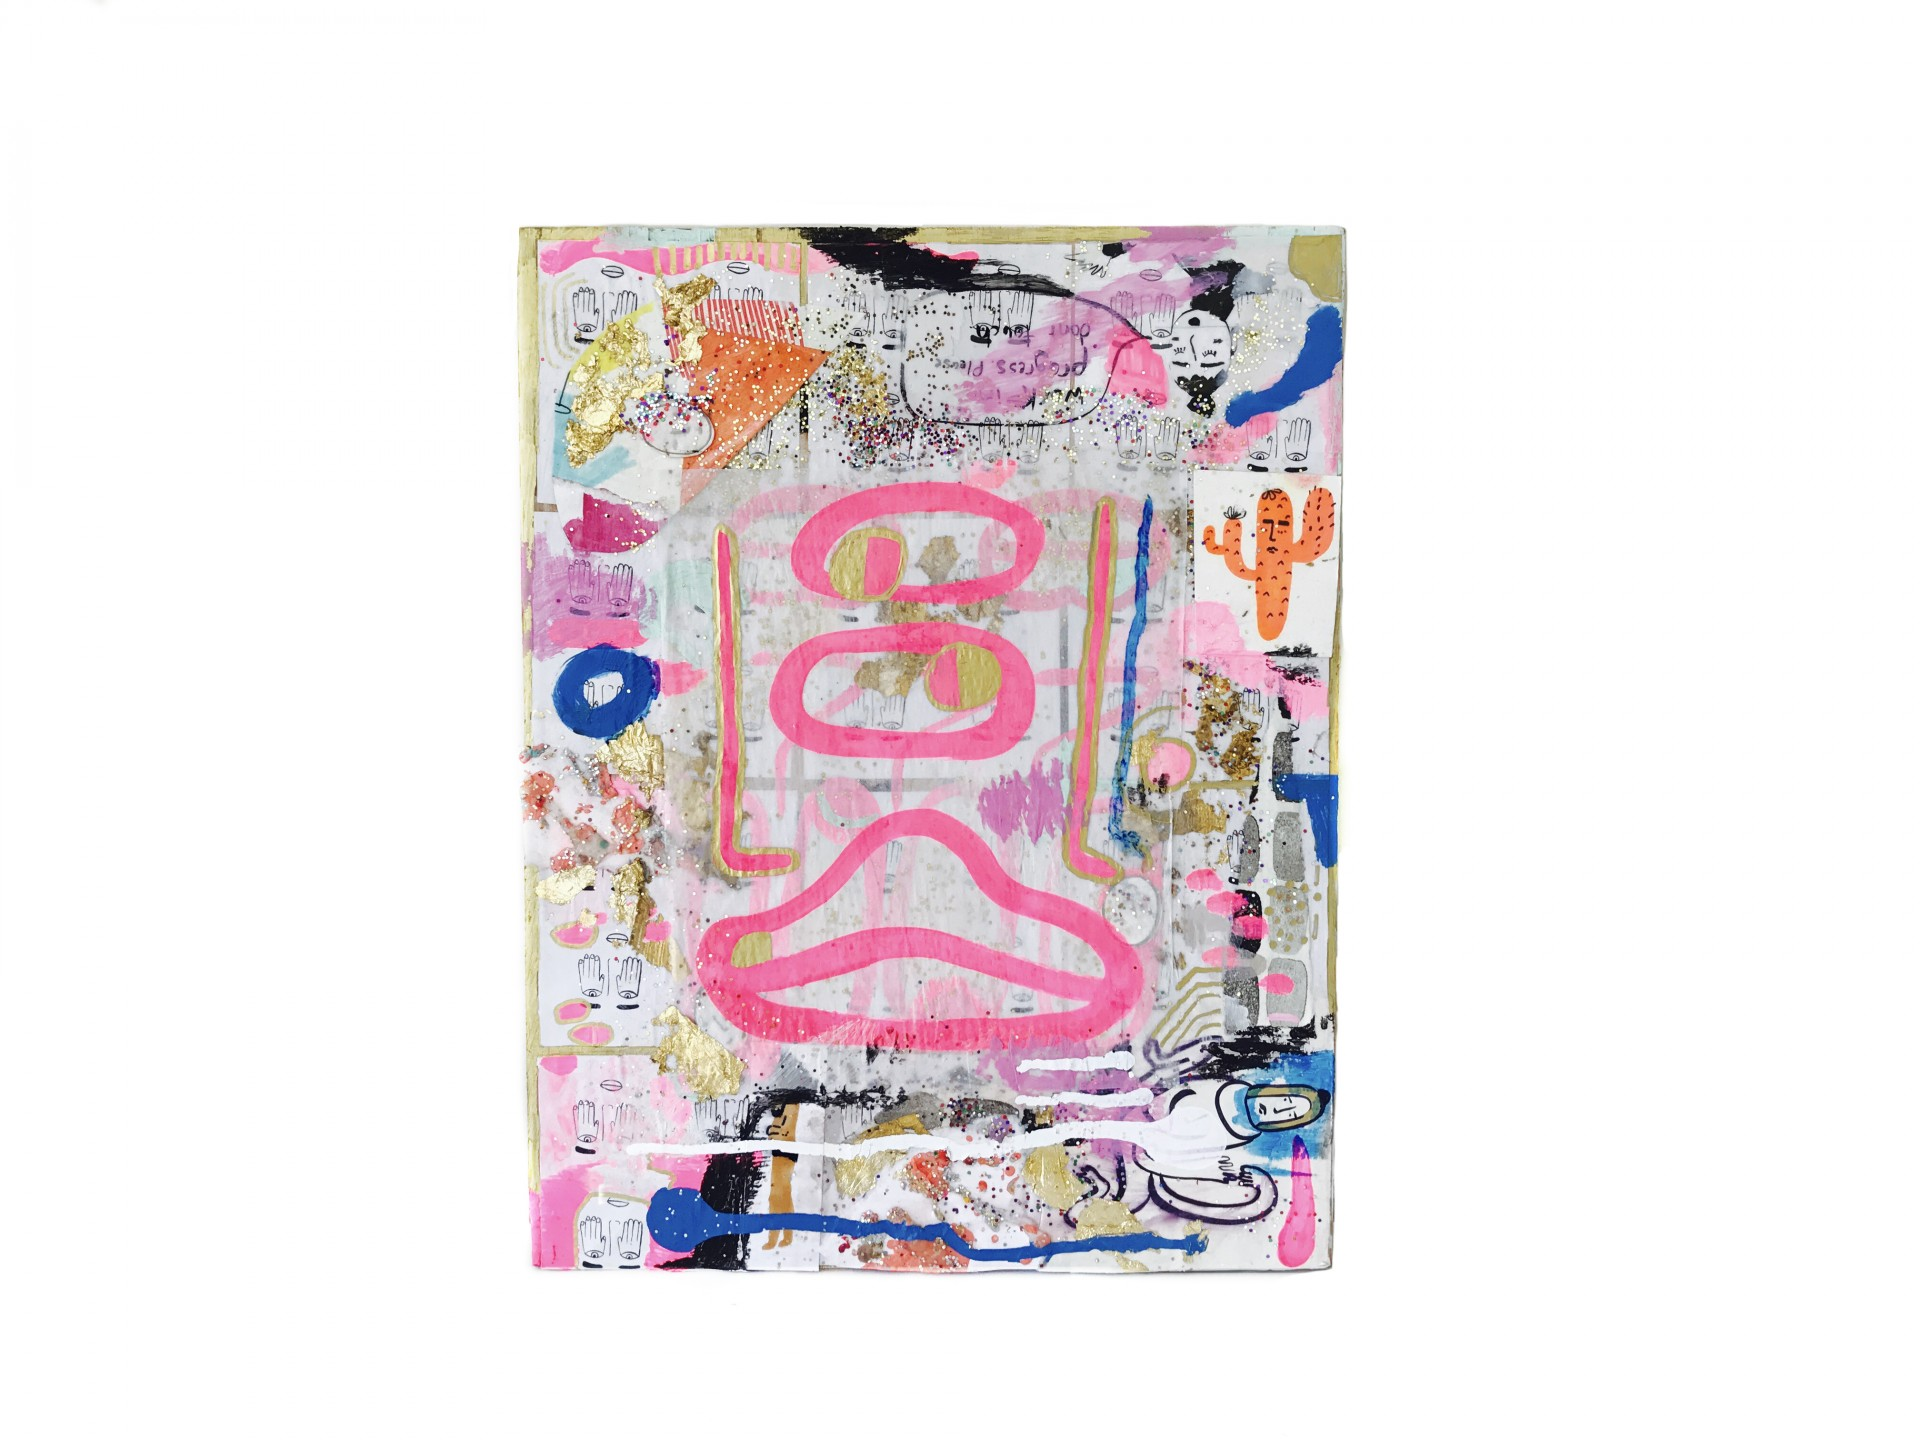 Rectangular painting with abstract designs, collaged materials and glitter. Image of face with one eye drawn in pink.